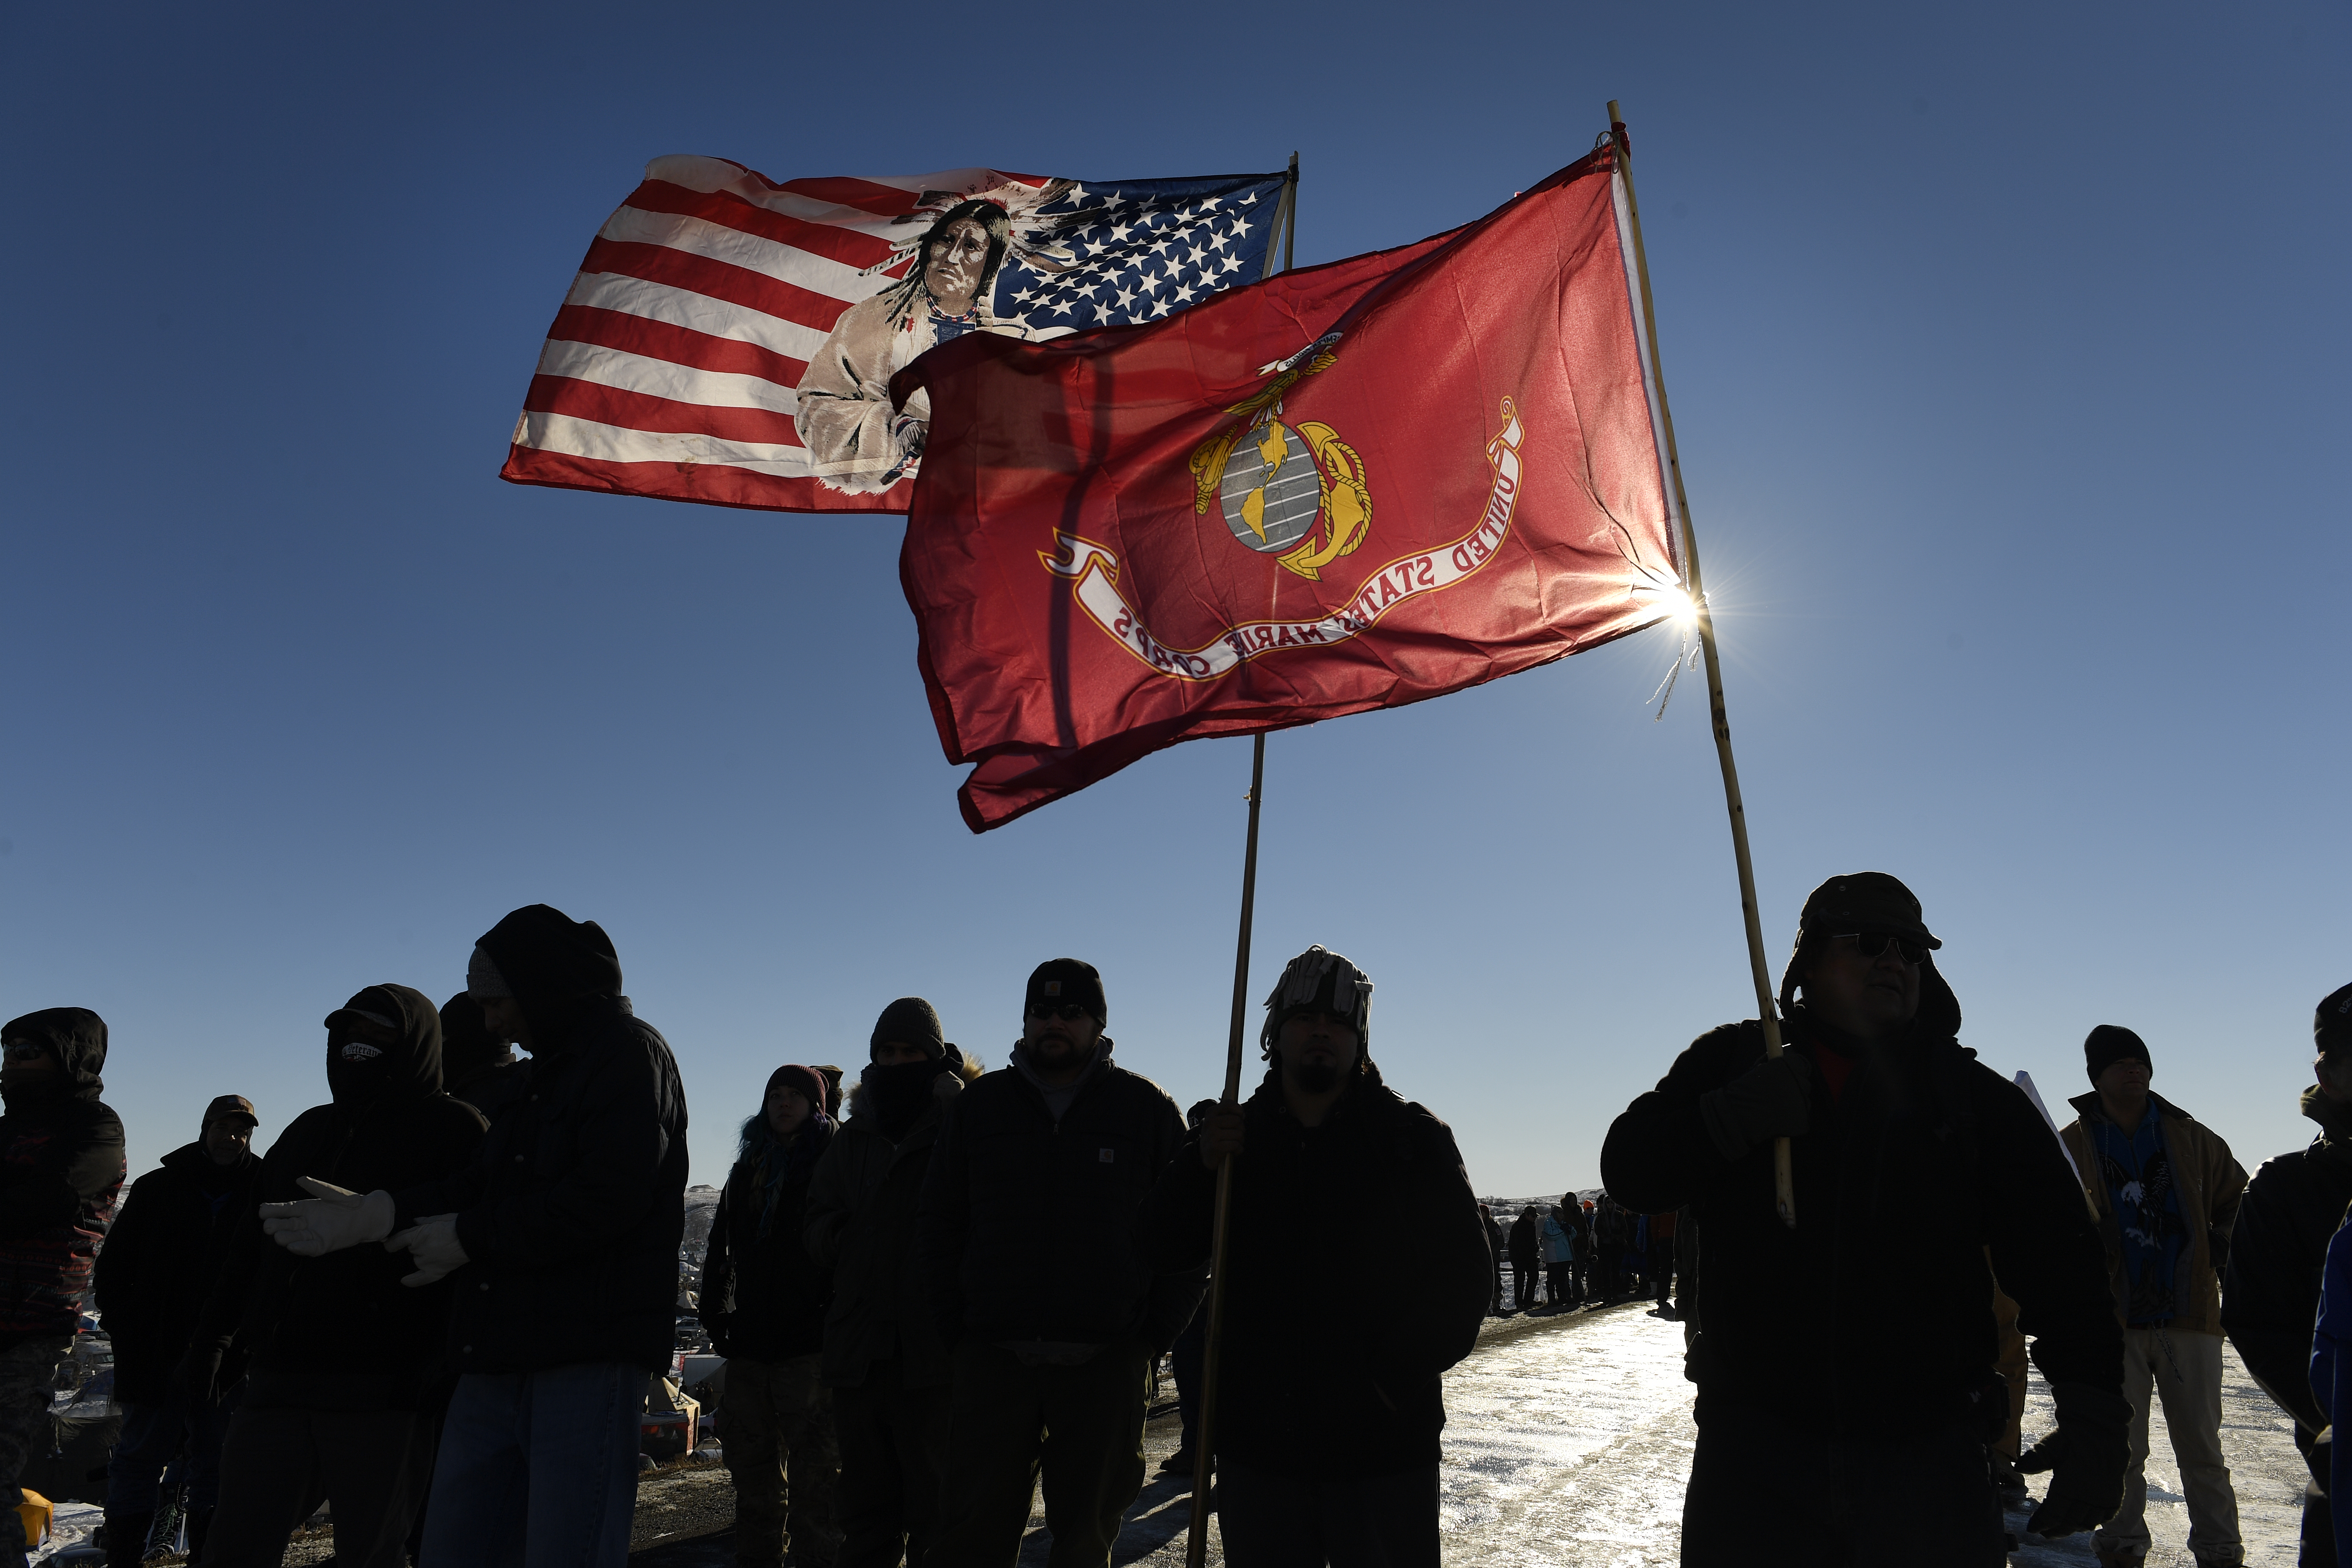 USveterans and native americans hold flags in solidarity at the Standing Rock Sioux Reservation on Dec. 4, 2016 outside Cannon Ball, North Dakota.